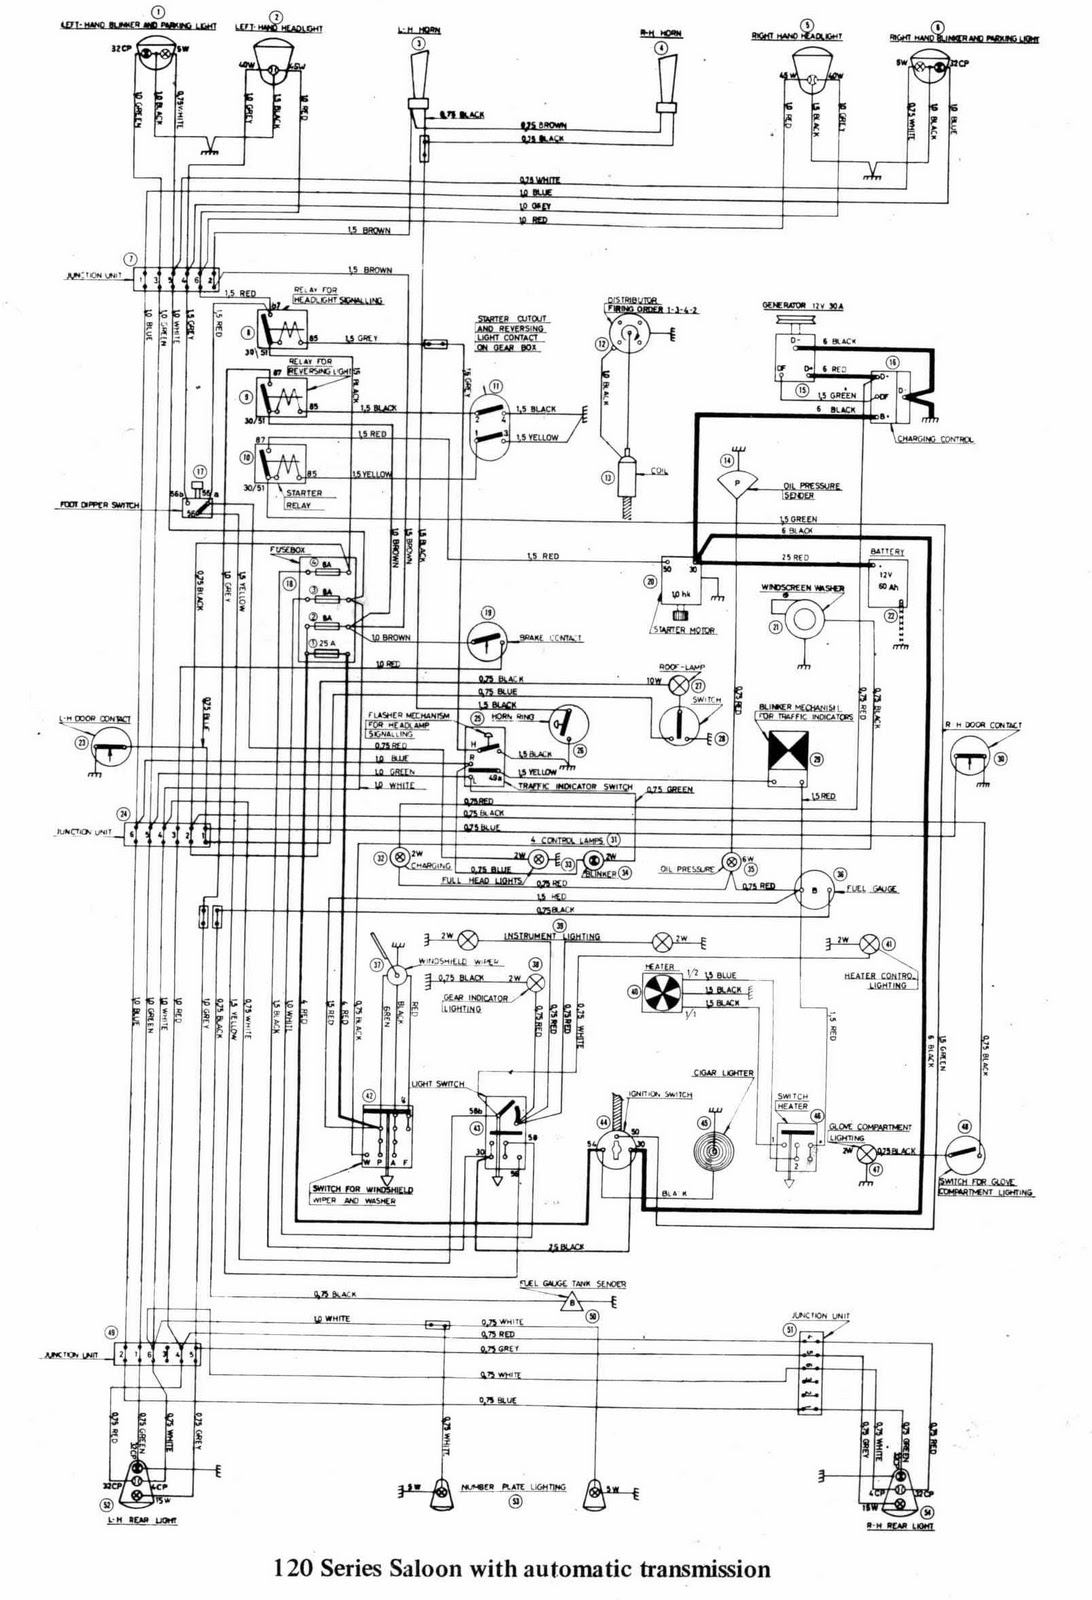 1998 Volvo S70 Heater Wiring Diagram Guide And Troubleshooting Of 1999 Diagrams Site Rh 42 Geraldsorger De Ac